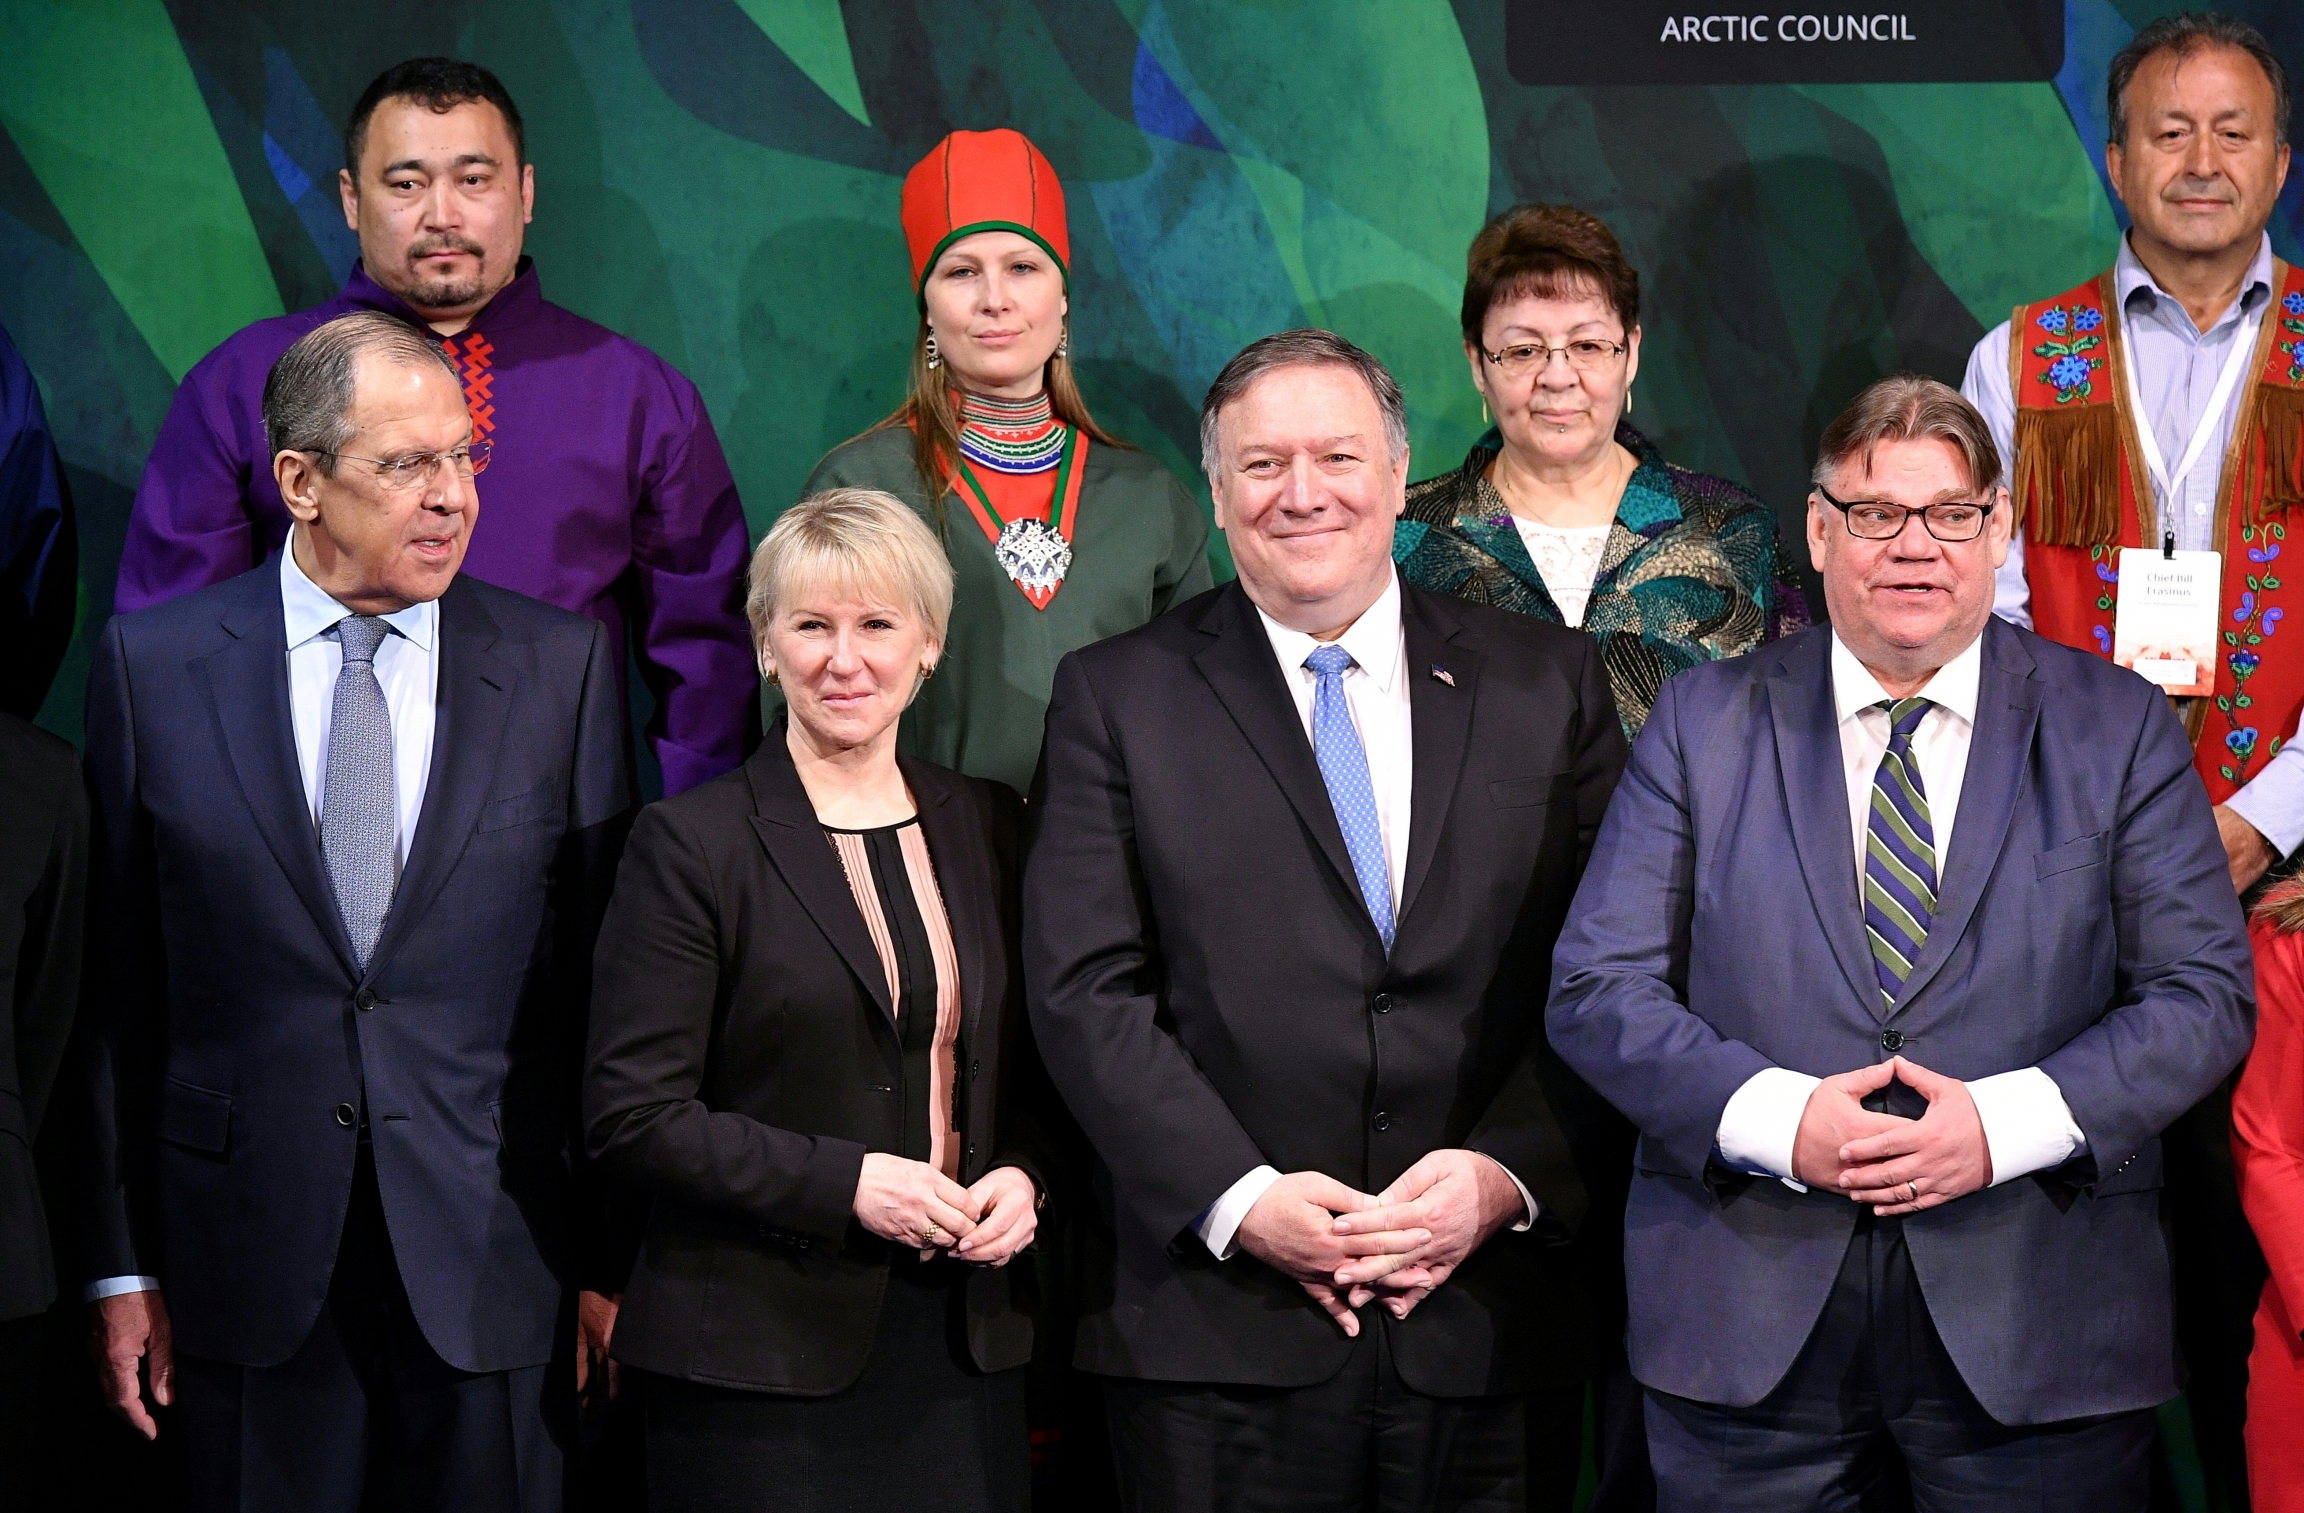 Front row from left, Foreign Ministers of Russia, Sergey Lavrov, Sweden, Margot Wallstrom, U.S. Secretary of State Mike Pompeo and Finland's Foreign Minister Timo Soini during the Arctic Council summit Rovaniemi, Rovaniemi, Finland May 7, 2019.